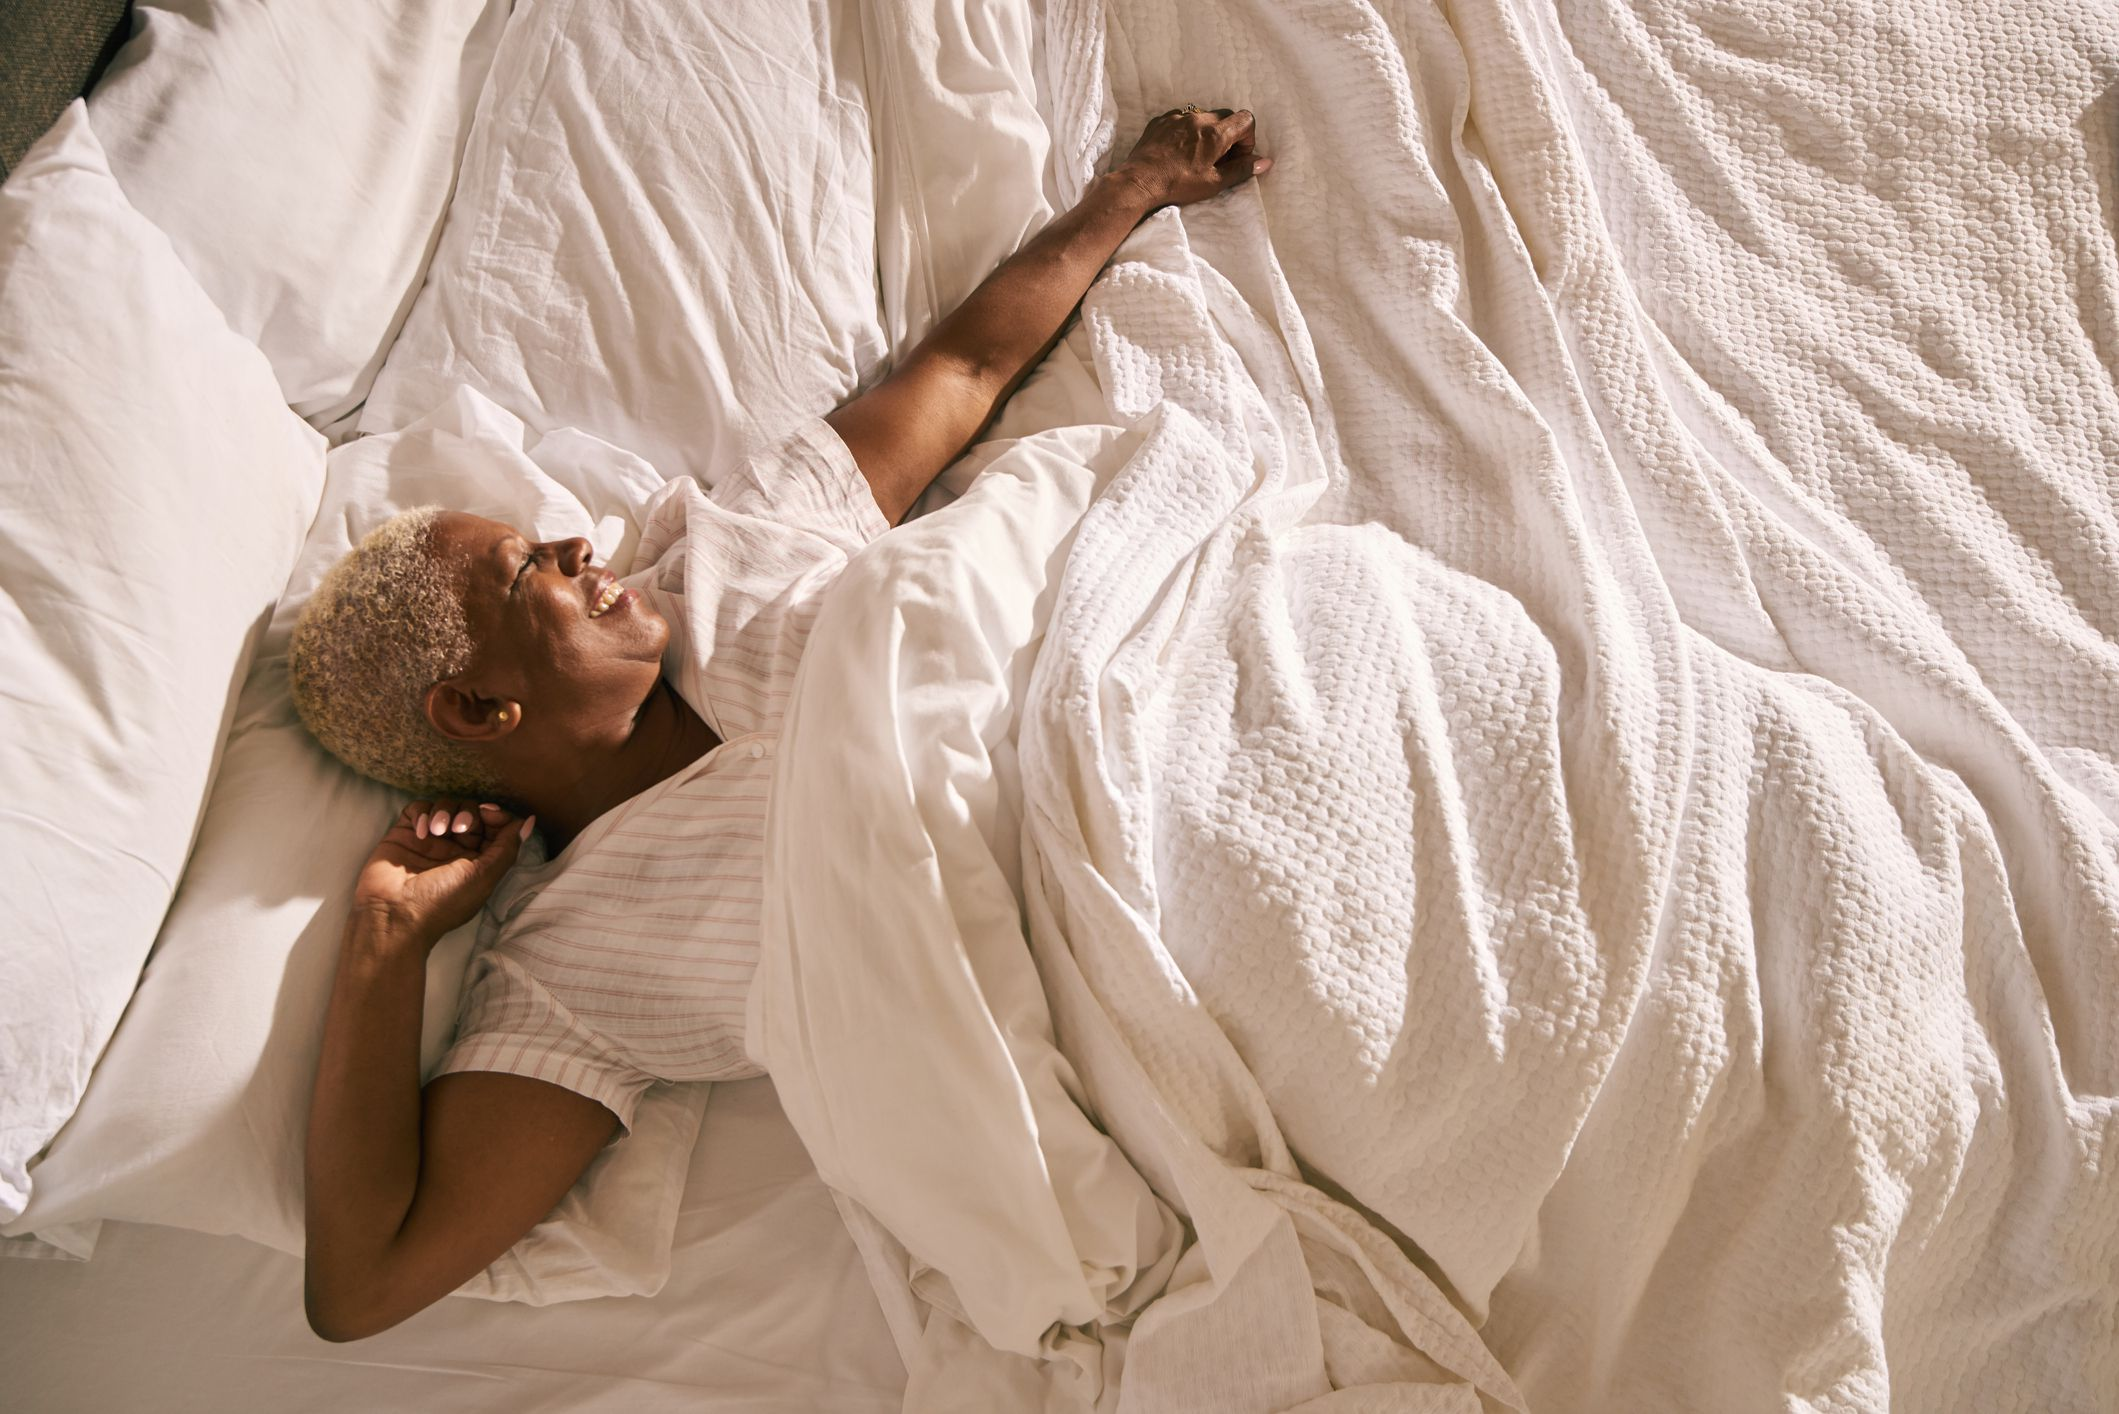 Better Sleep Can Improve Stress Response and Increase Positivity, Study Shows